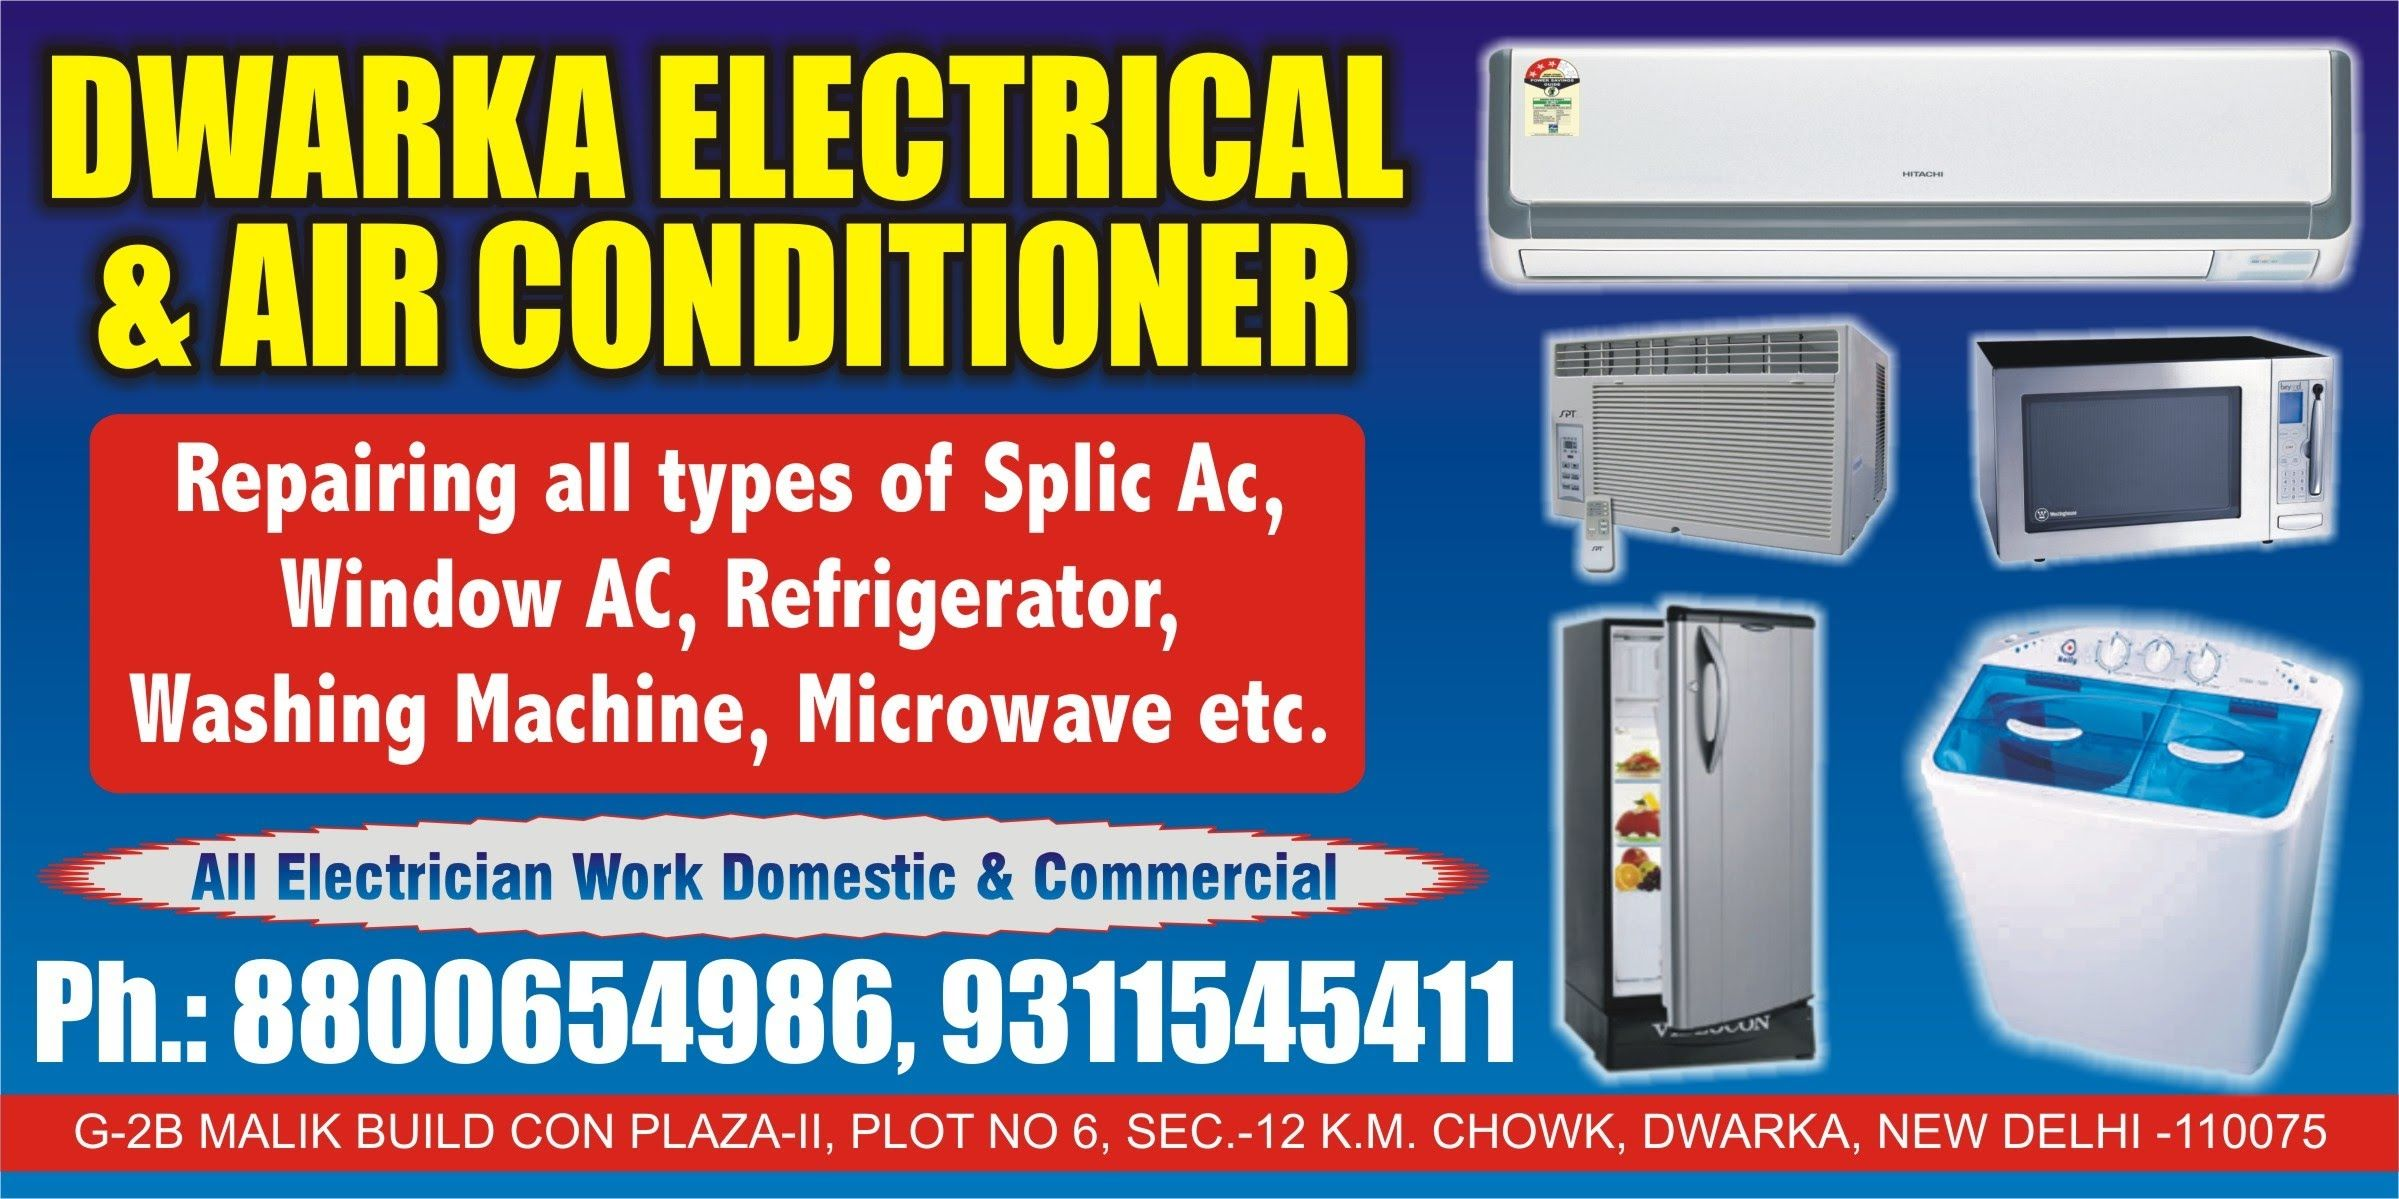 Automotive Air Conditioning System Types A C System With Refrigeration And Air Conditioning Air Conditioning